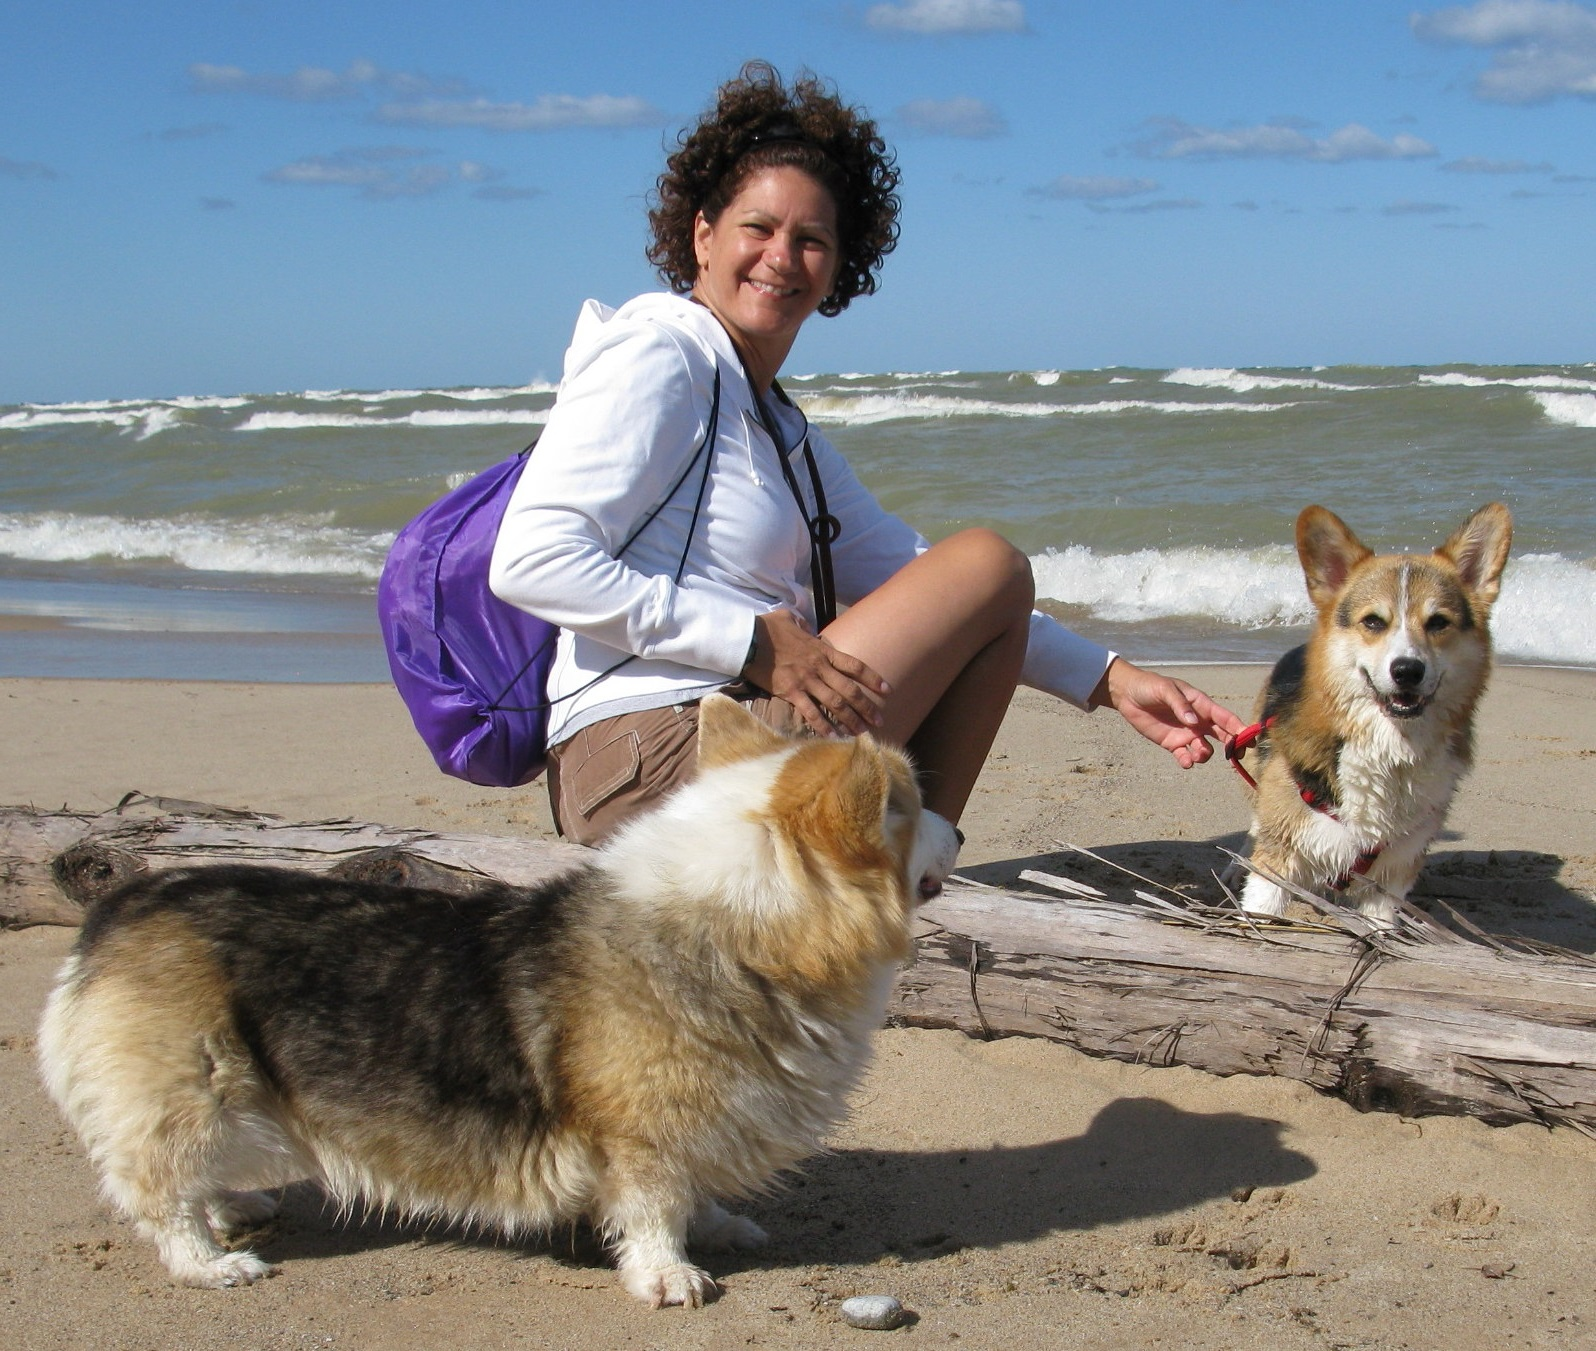 laura-with-corgis-at-the-beach21